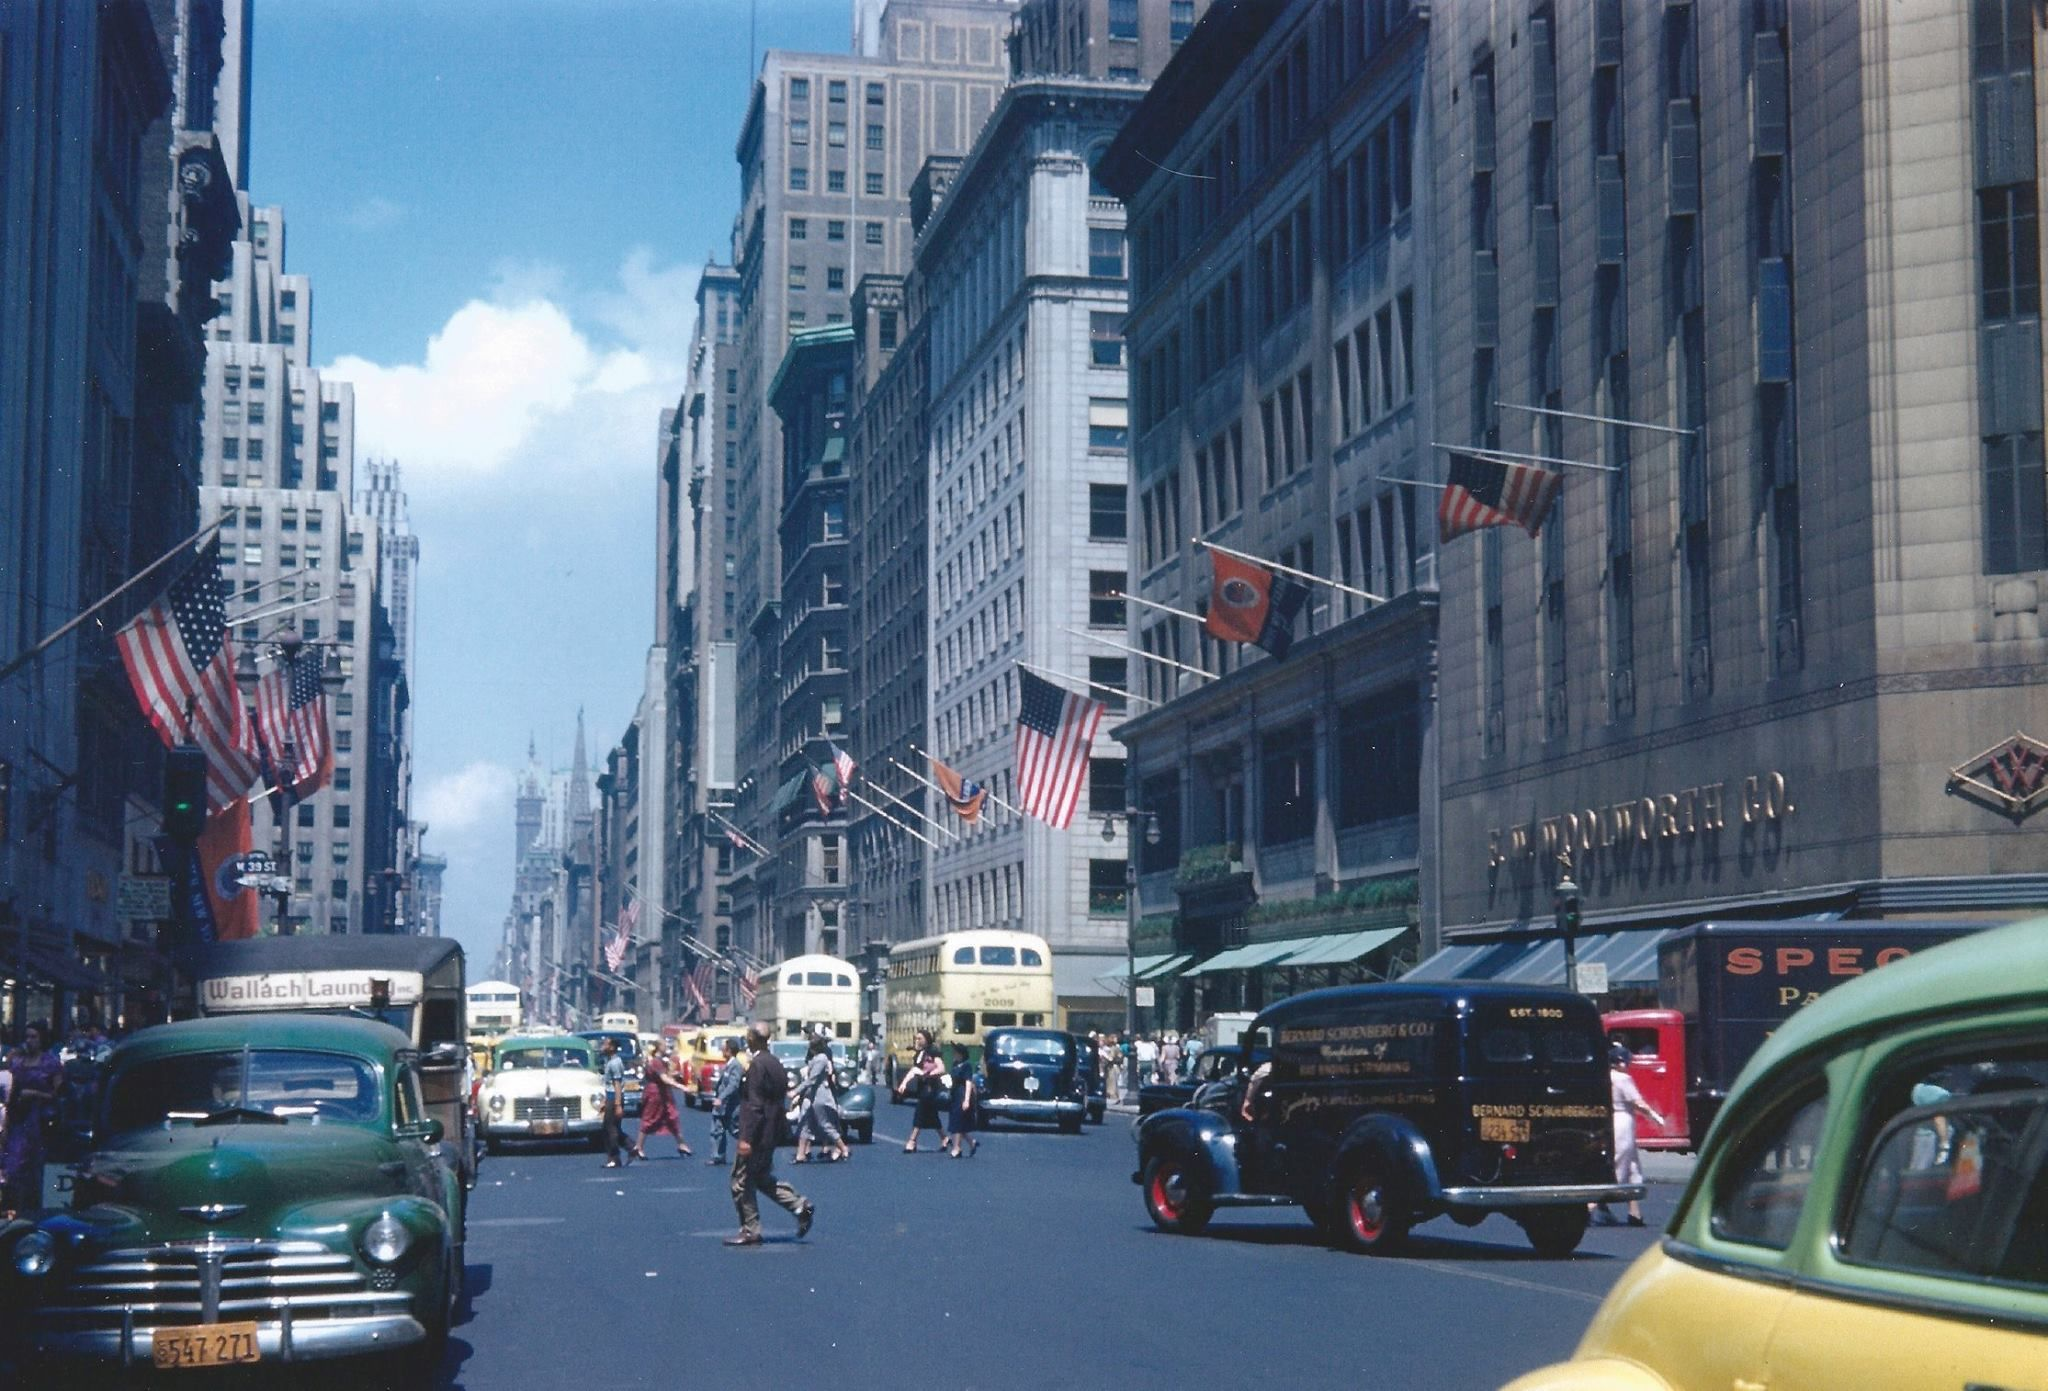 Manhattan: Additional View of 5th Avenue and 39th Street (1950s)